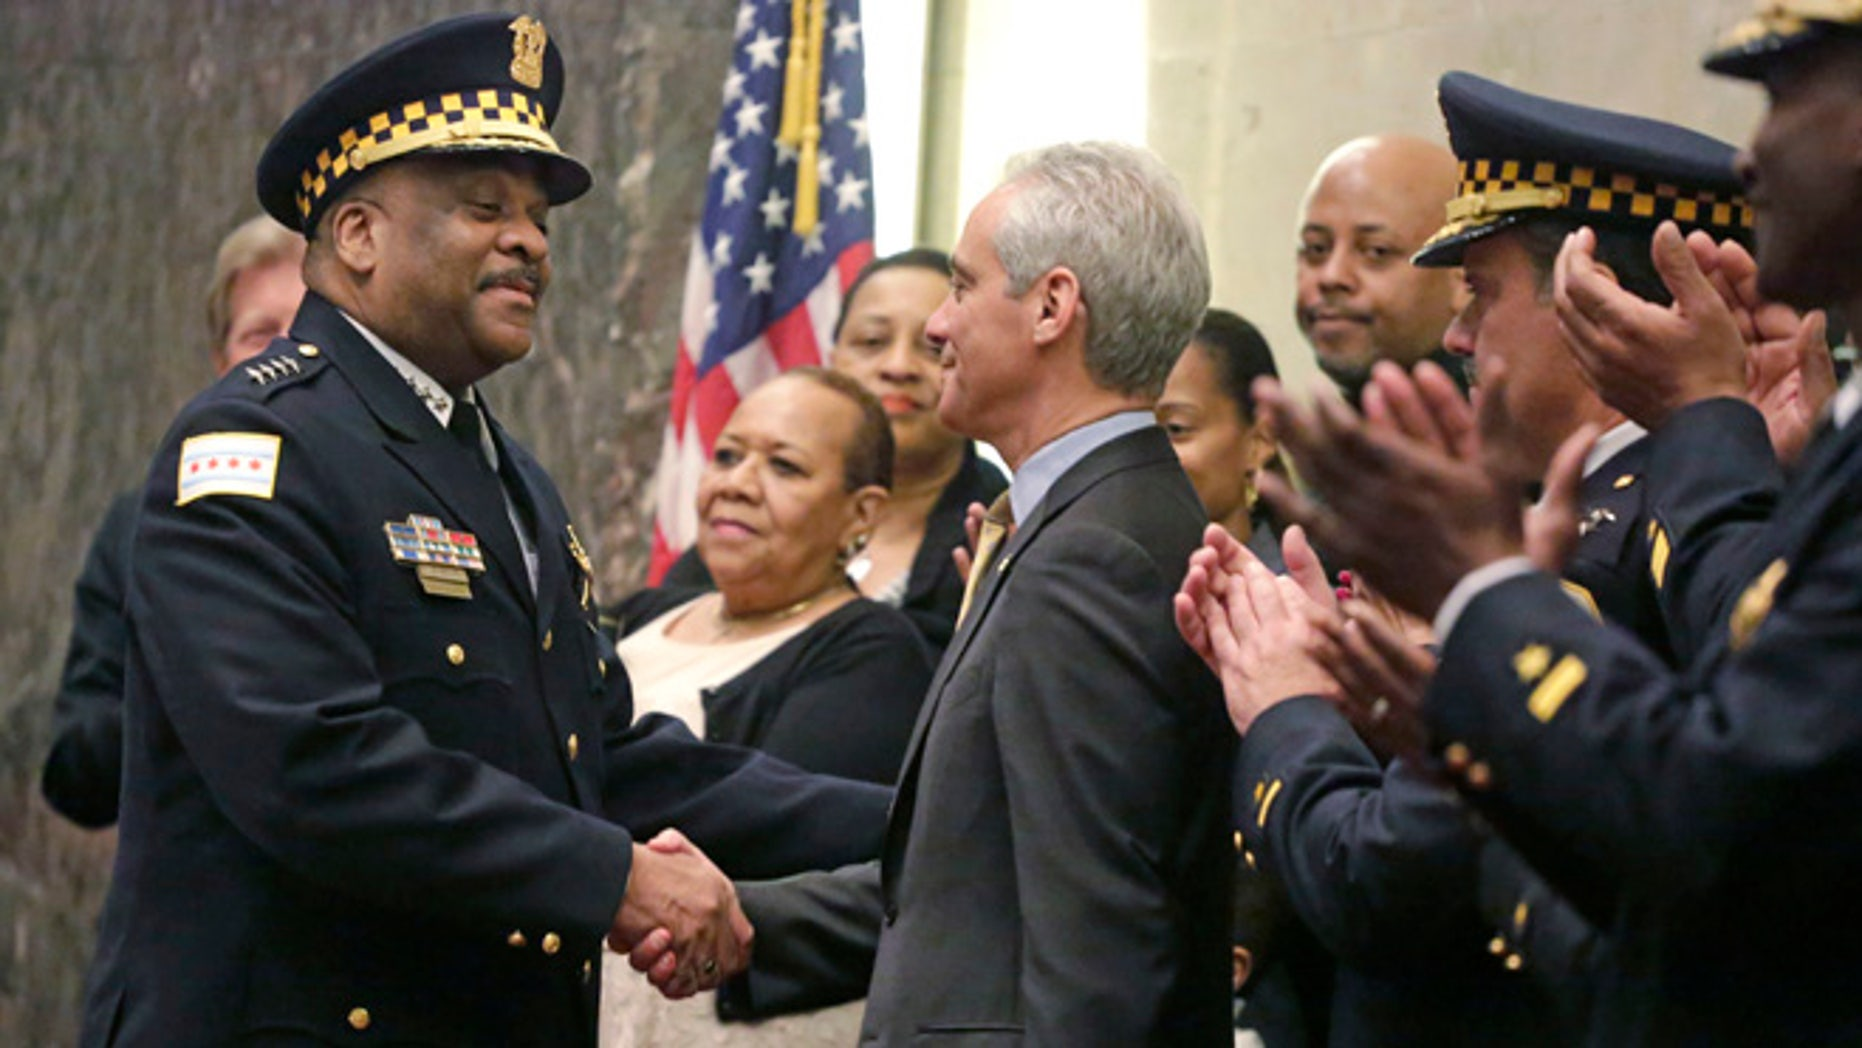 Chicago Mayor Rahm Emanuel shakes hands with Eddie Johnson on Wednesday, April 13, 2016, in Chicago.